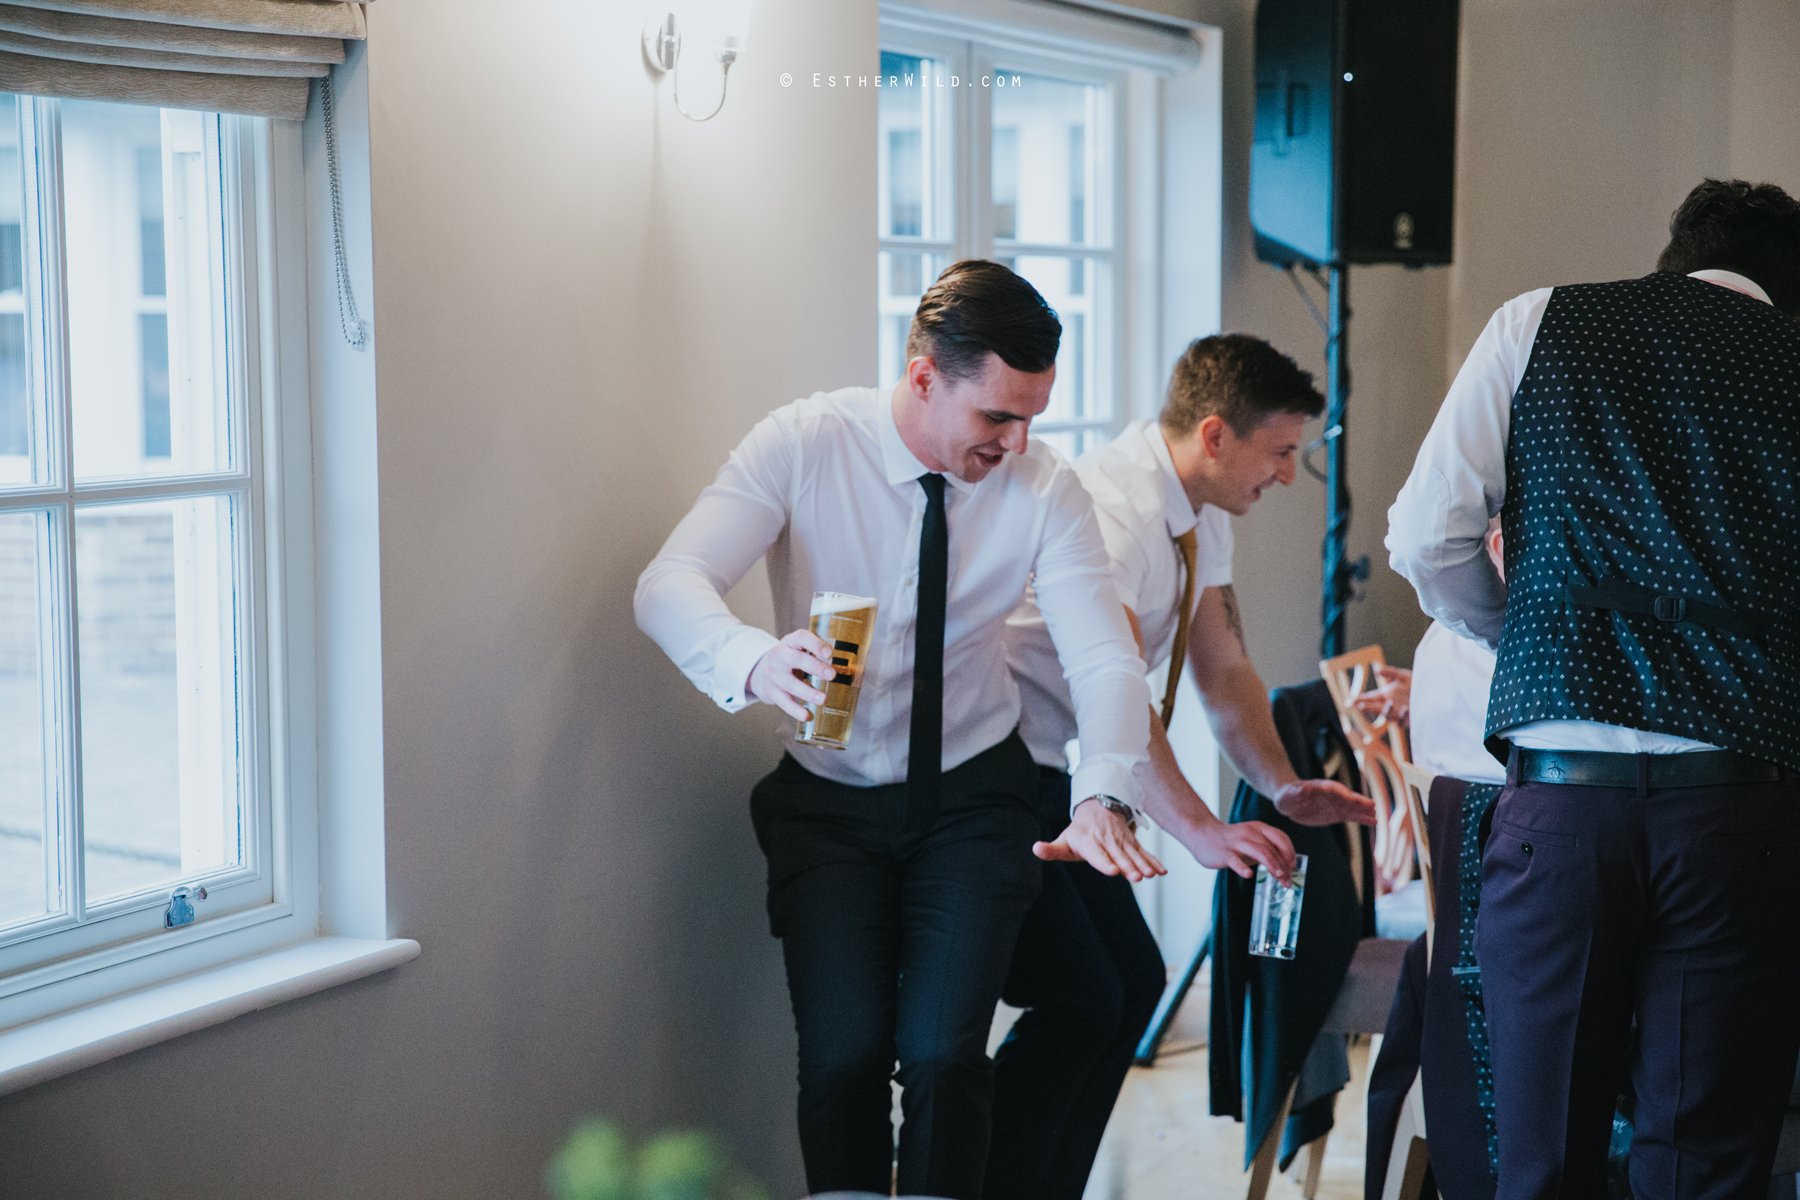 The_BoatHouse_Wedding_Venue_Ormesby_Norfolk_Broads_Boat_Wedding_Photography_Esther_Wild_Photographer_IMG_2646.jpg